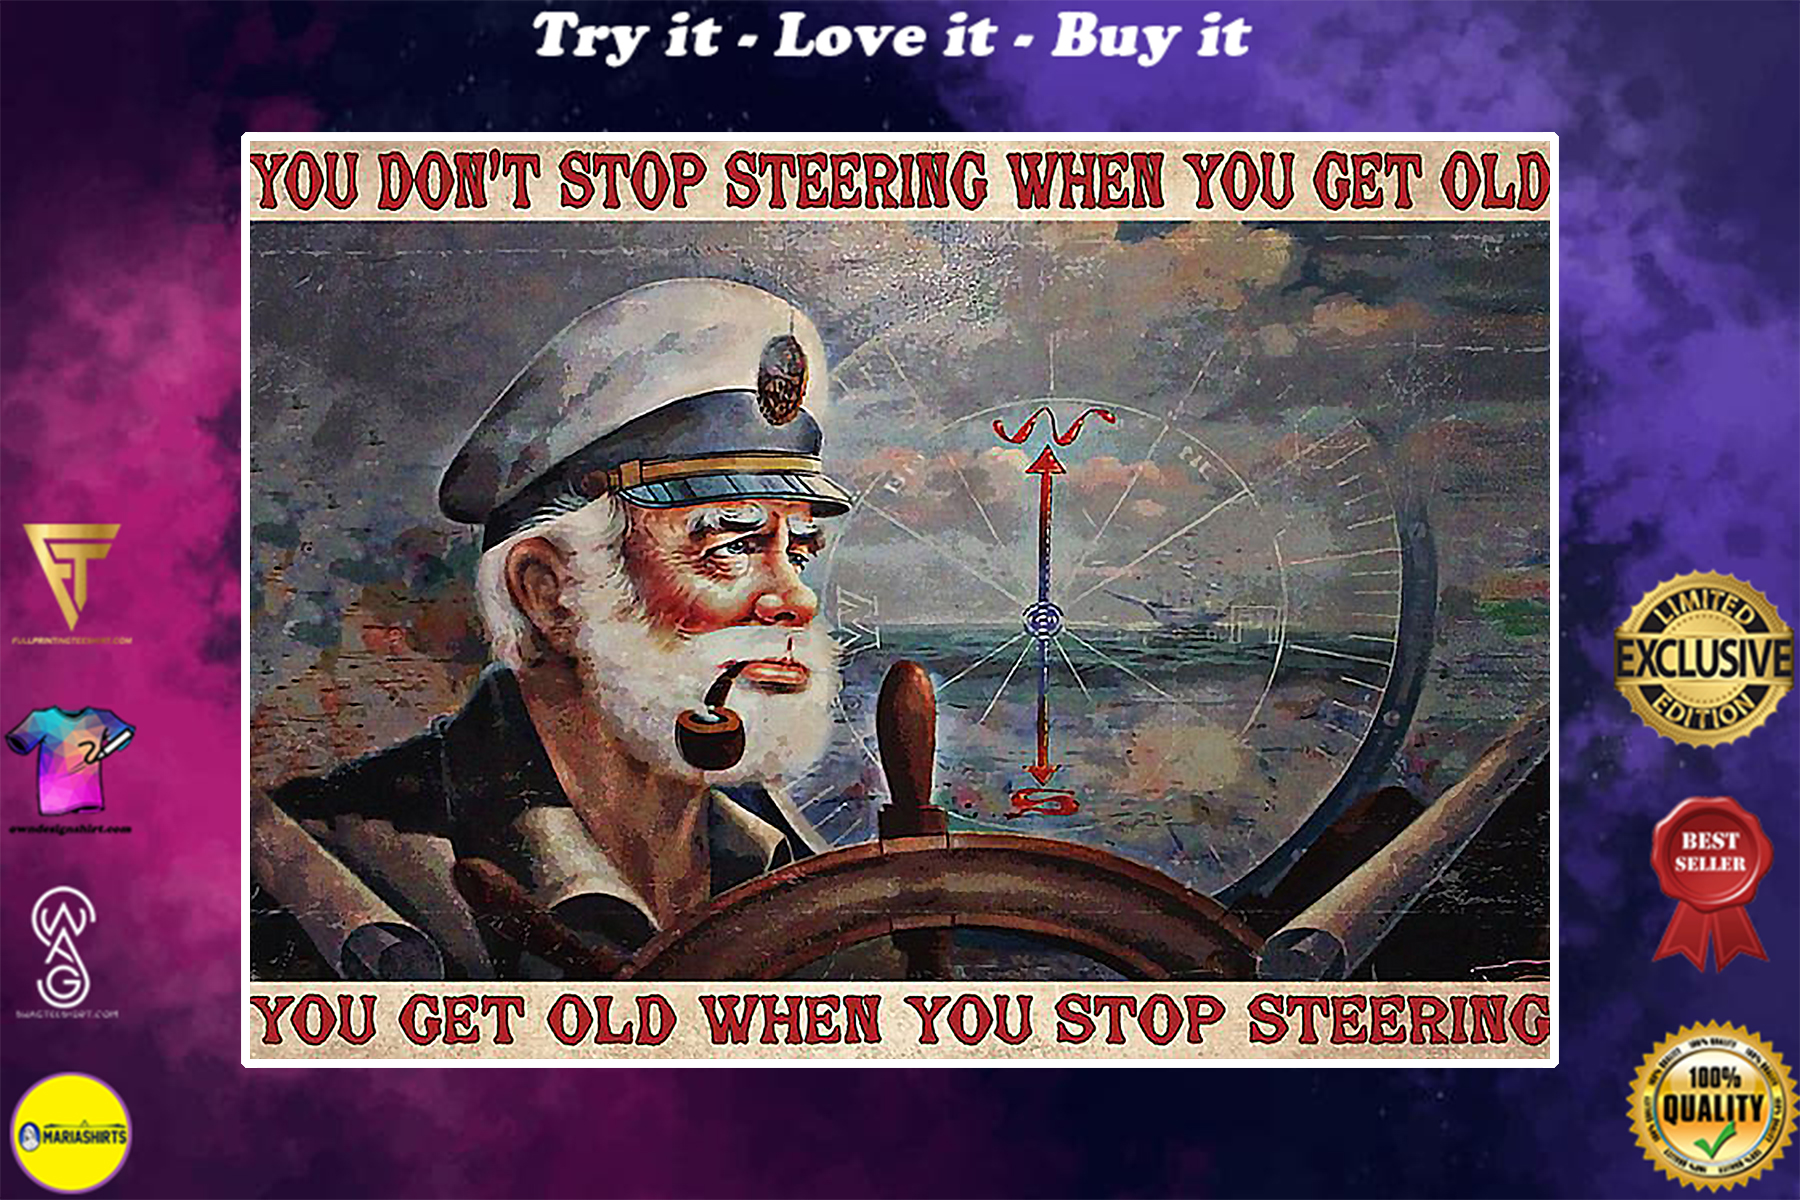 vintage boatswain you dont stop steering when you get old you get old when you stop steering poster